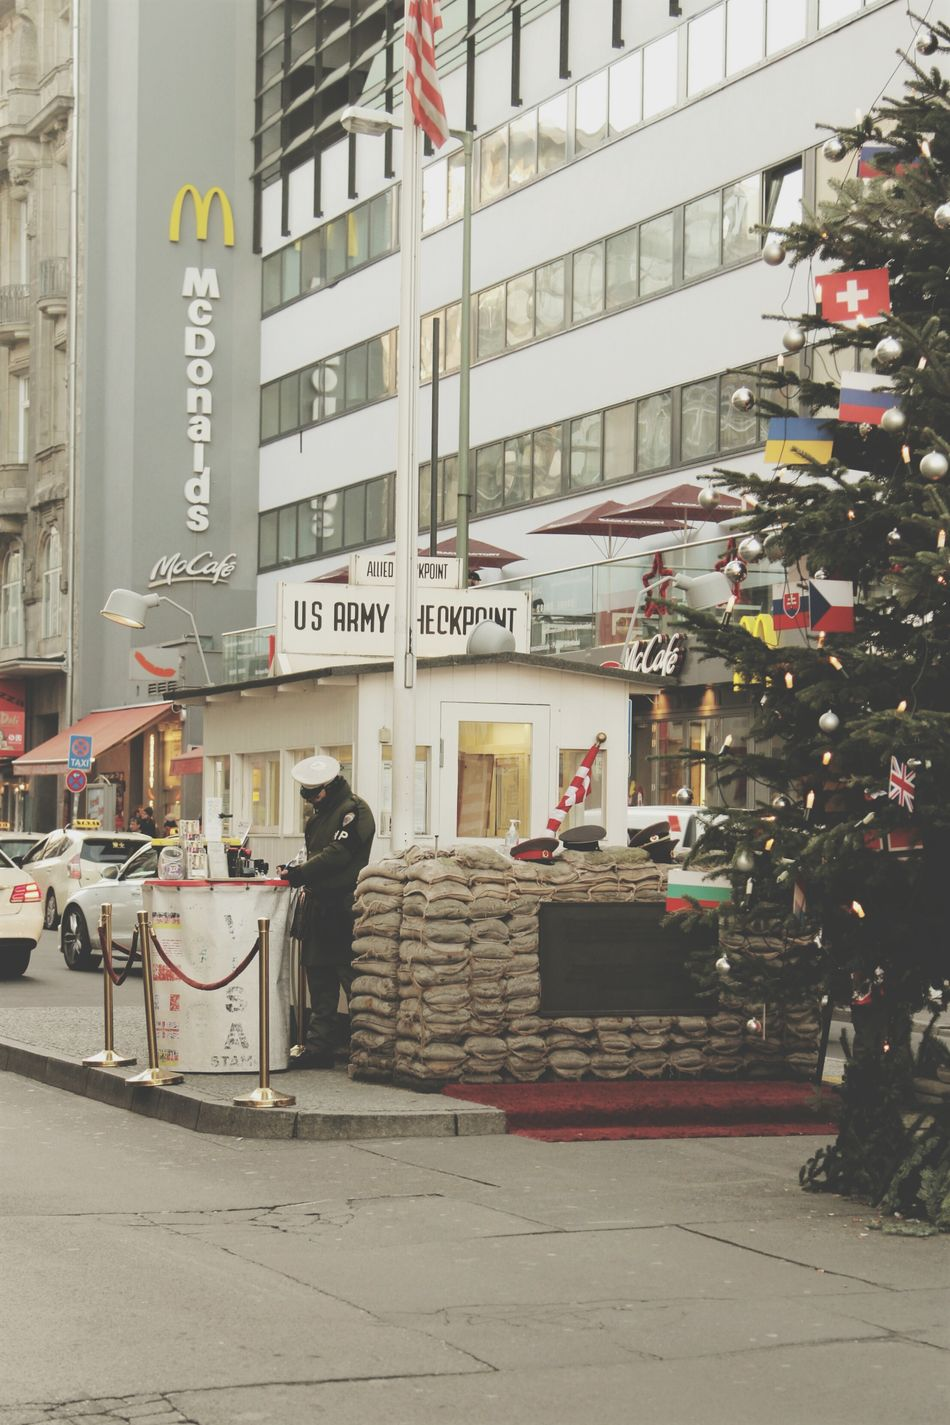 City Architecture Building Exterior History Historical Place Historical Site Streetphotography Street Photography Germany Berlin Berliner Mauer Berlin Wall Checkpoint Charlie  Checkpointcharlie Berlin Streets USA FLAG Us Army